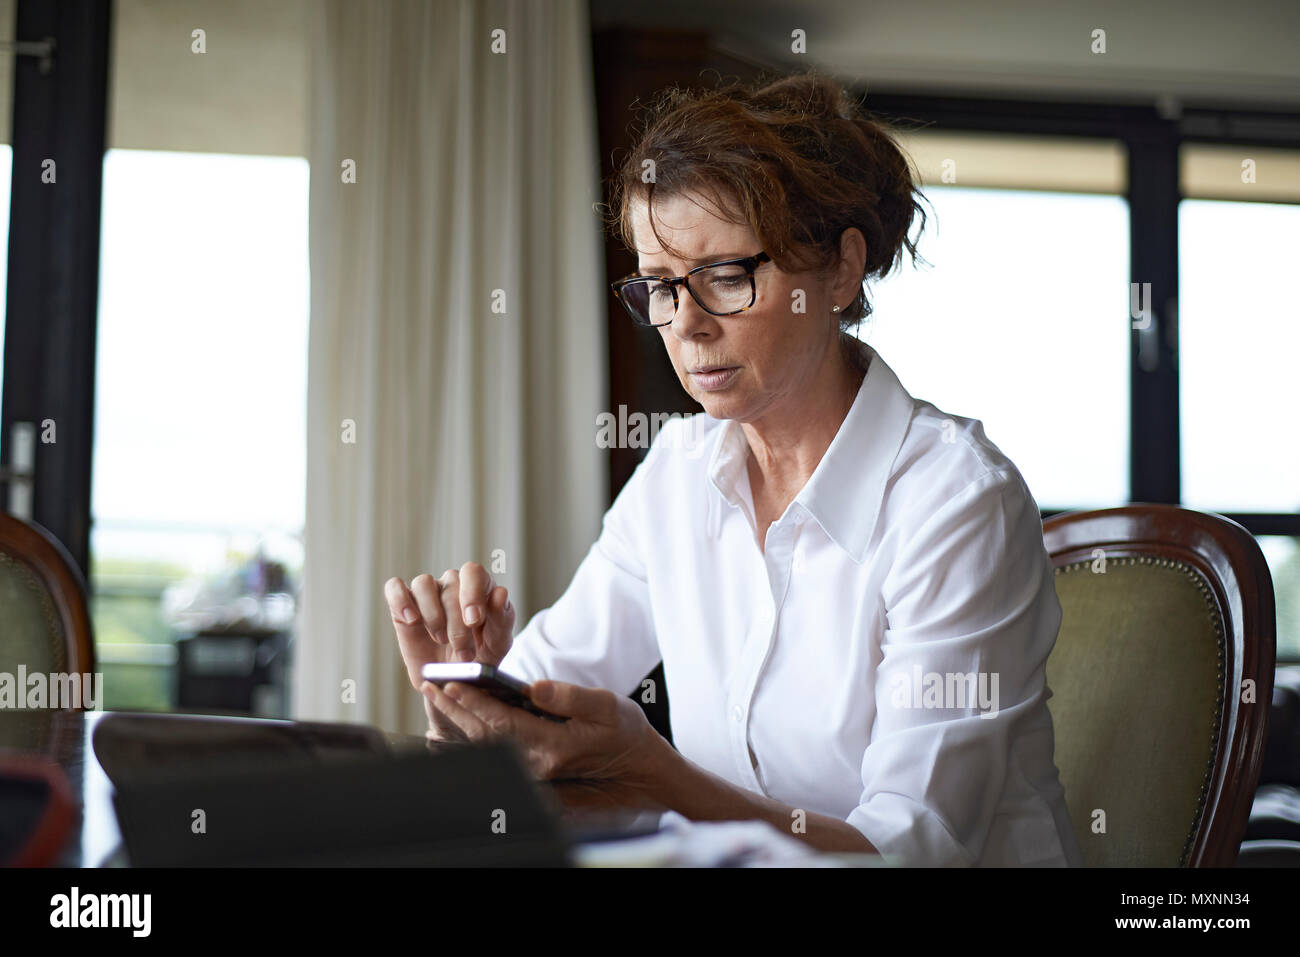 Elderly caucasian woman sitting at table in her home with a mobile phone in her hands looking very worried and upset having received bad news - Stock Image